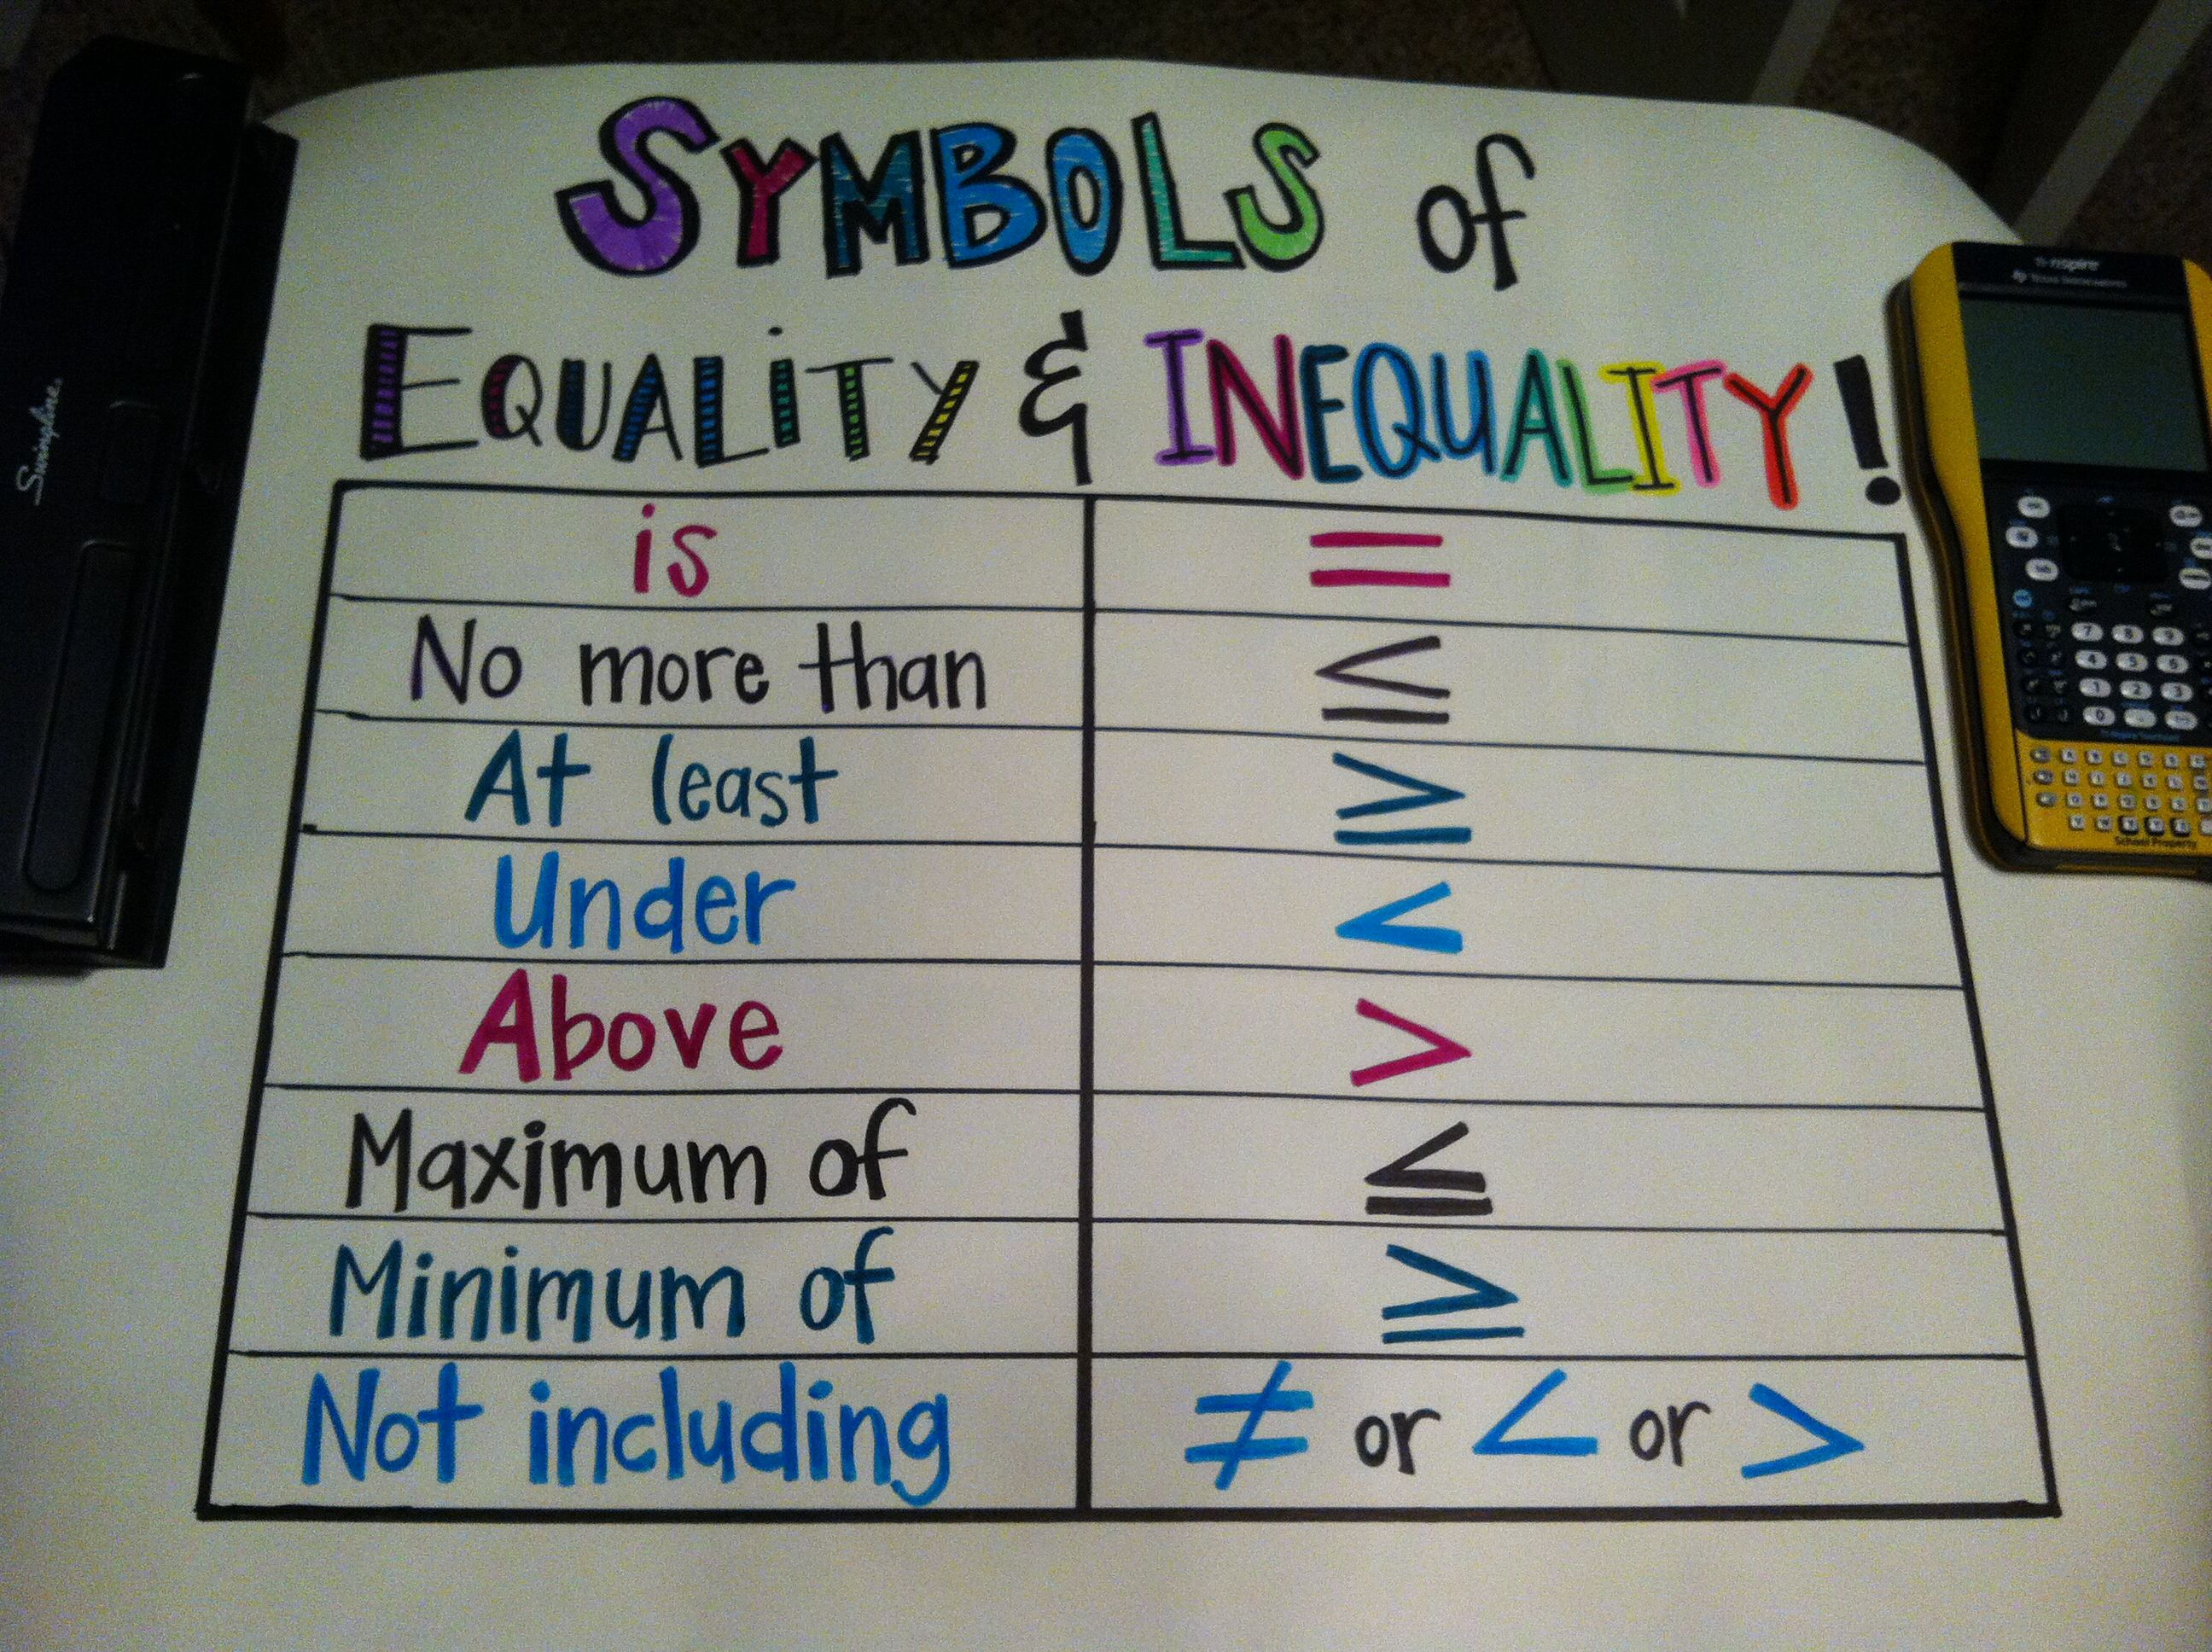 Symbols Of Equality And Inequality Used For Specific